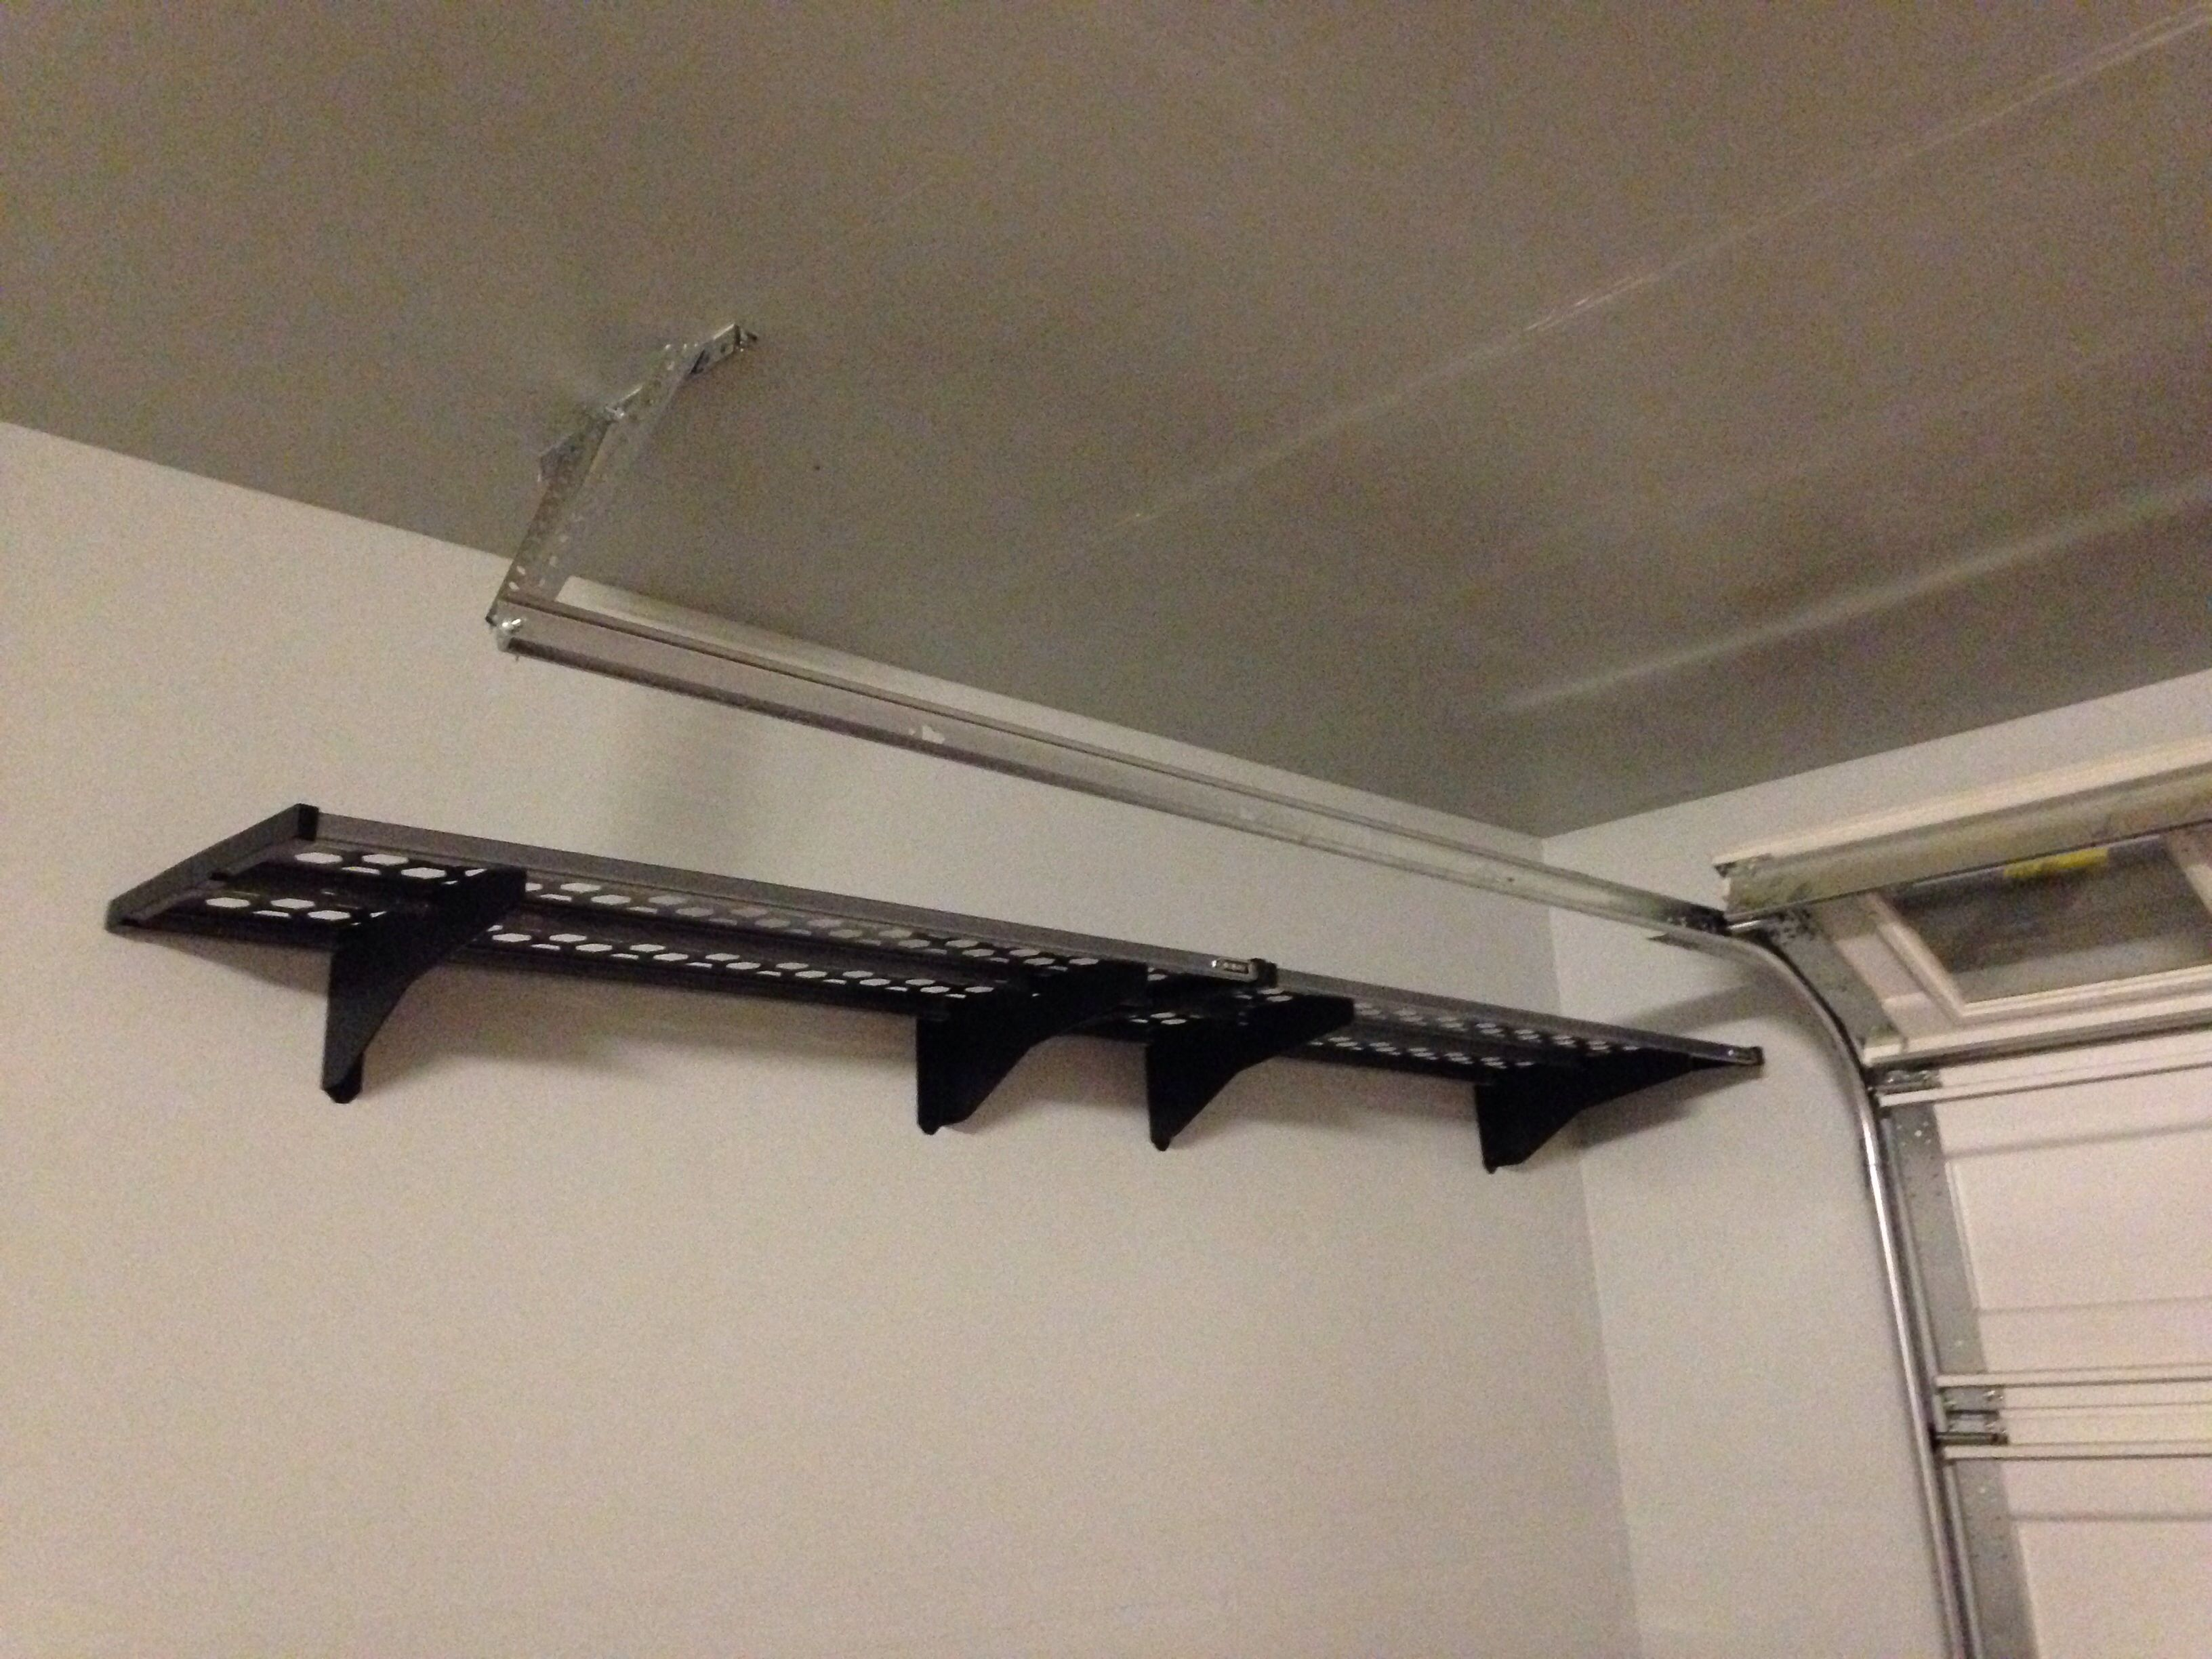 Garage storage  Kobalt racks from Lowes. Garage storage  Kobalt racks from Lowes   Garage ideas   Pinterest